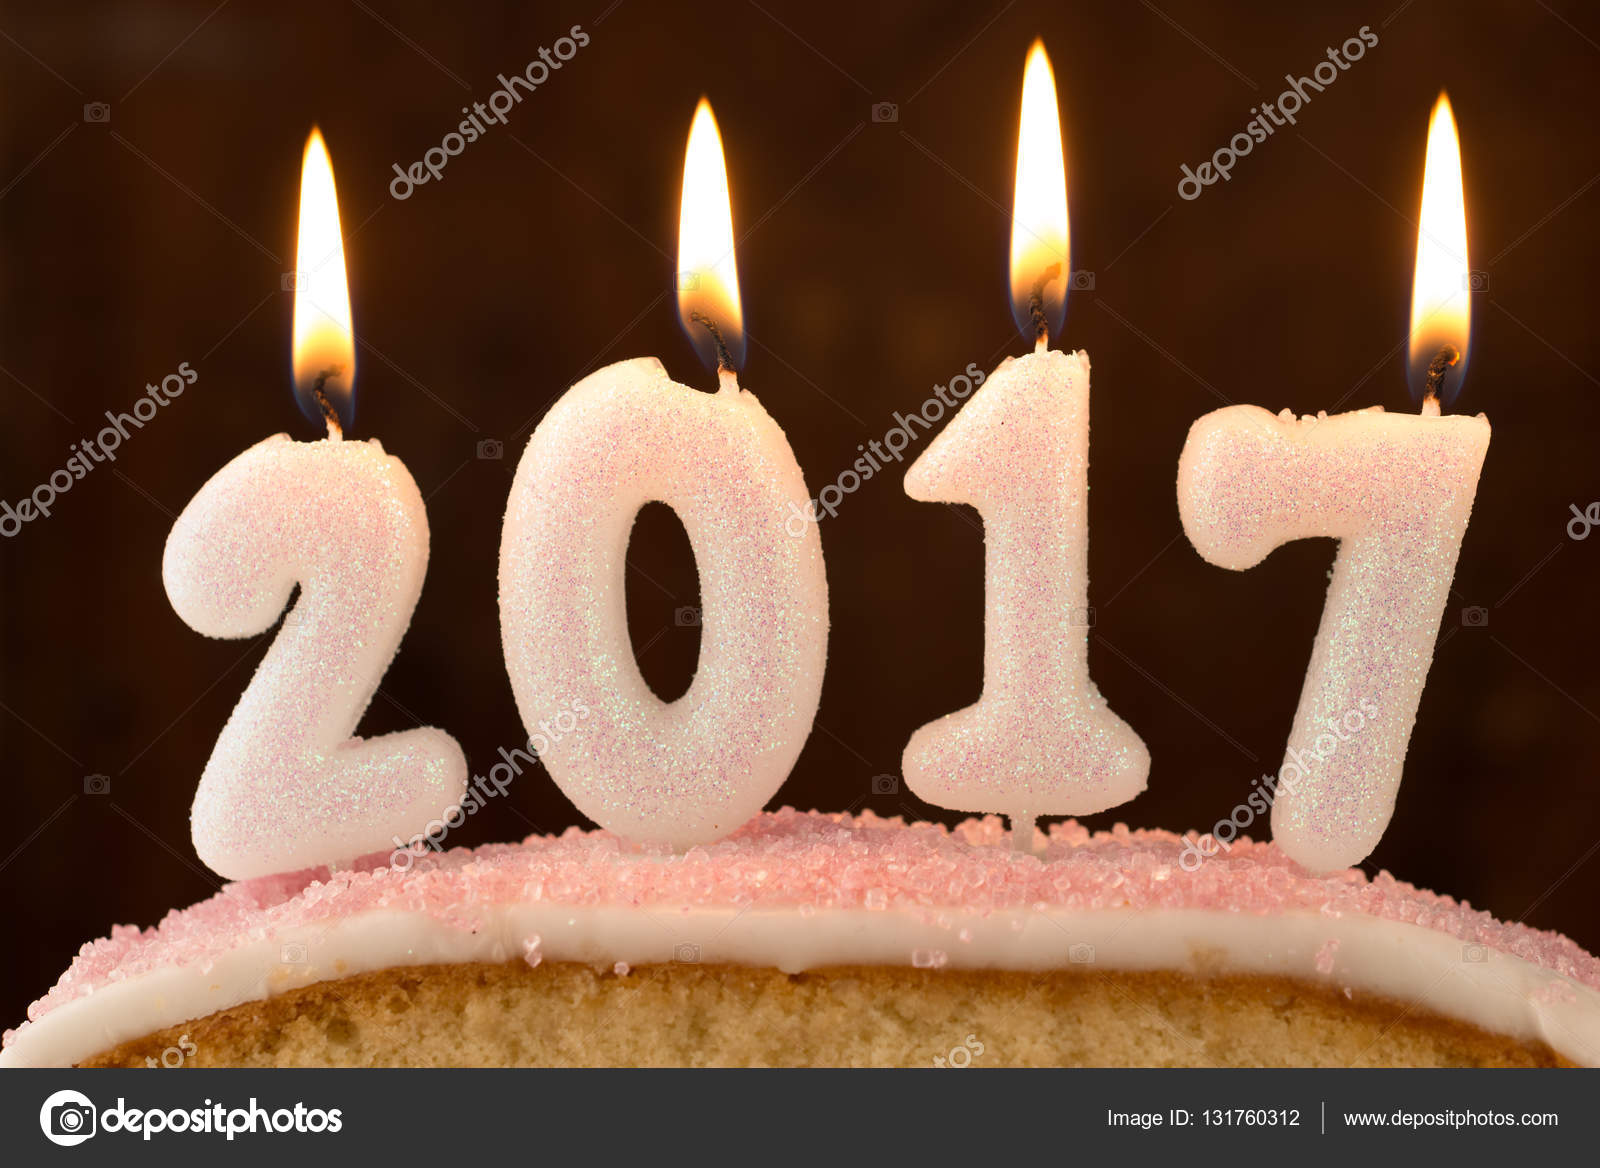 4 White Candles 2017 Lit On Top Of A Sponge Cake Shot Close Up Against Dark Wooden Background Photo By Stockphotographyfirmcouk